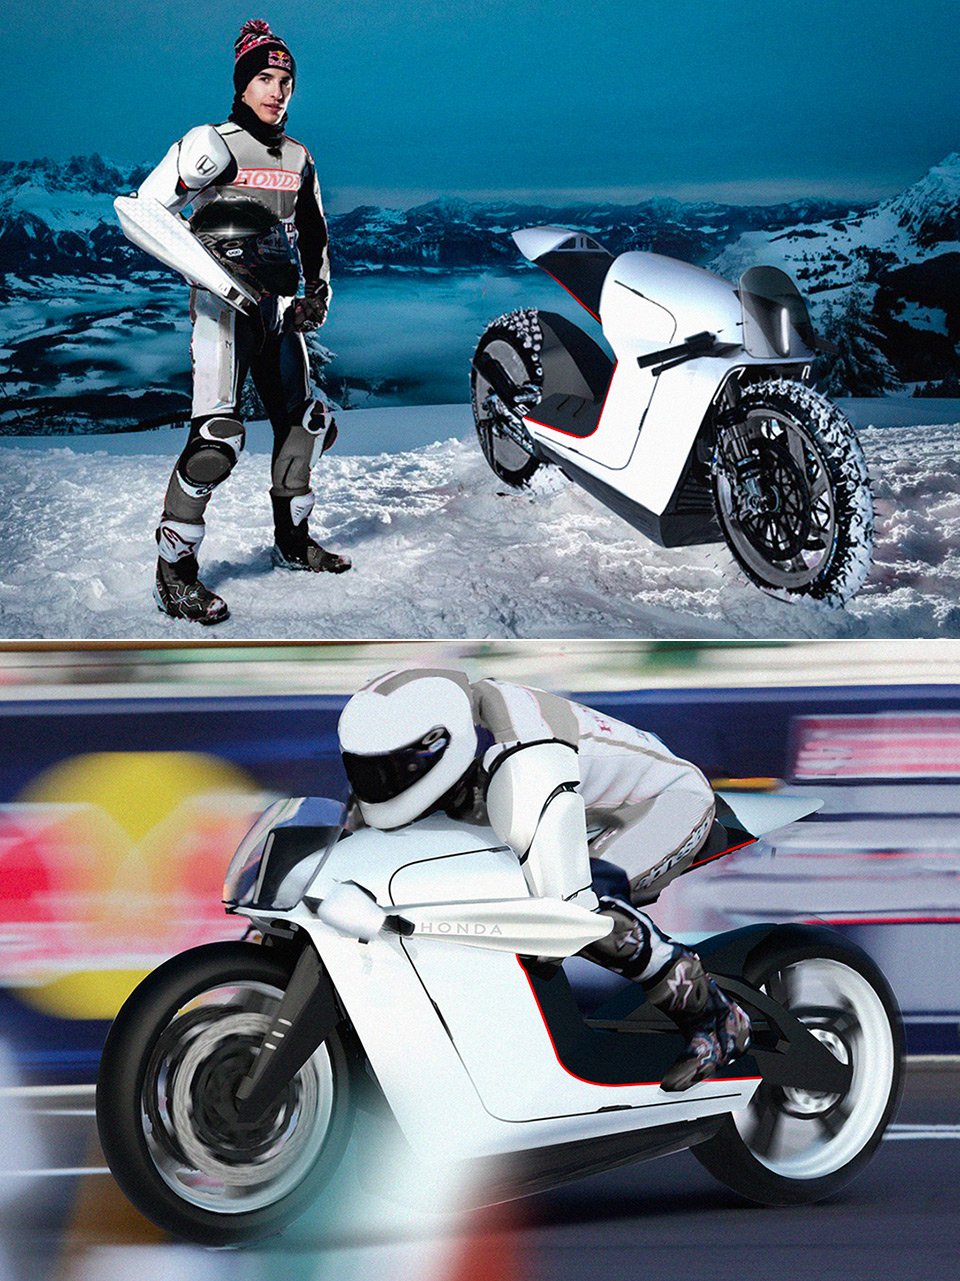 Honda Bionic Arm Motorcycle